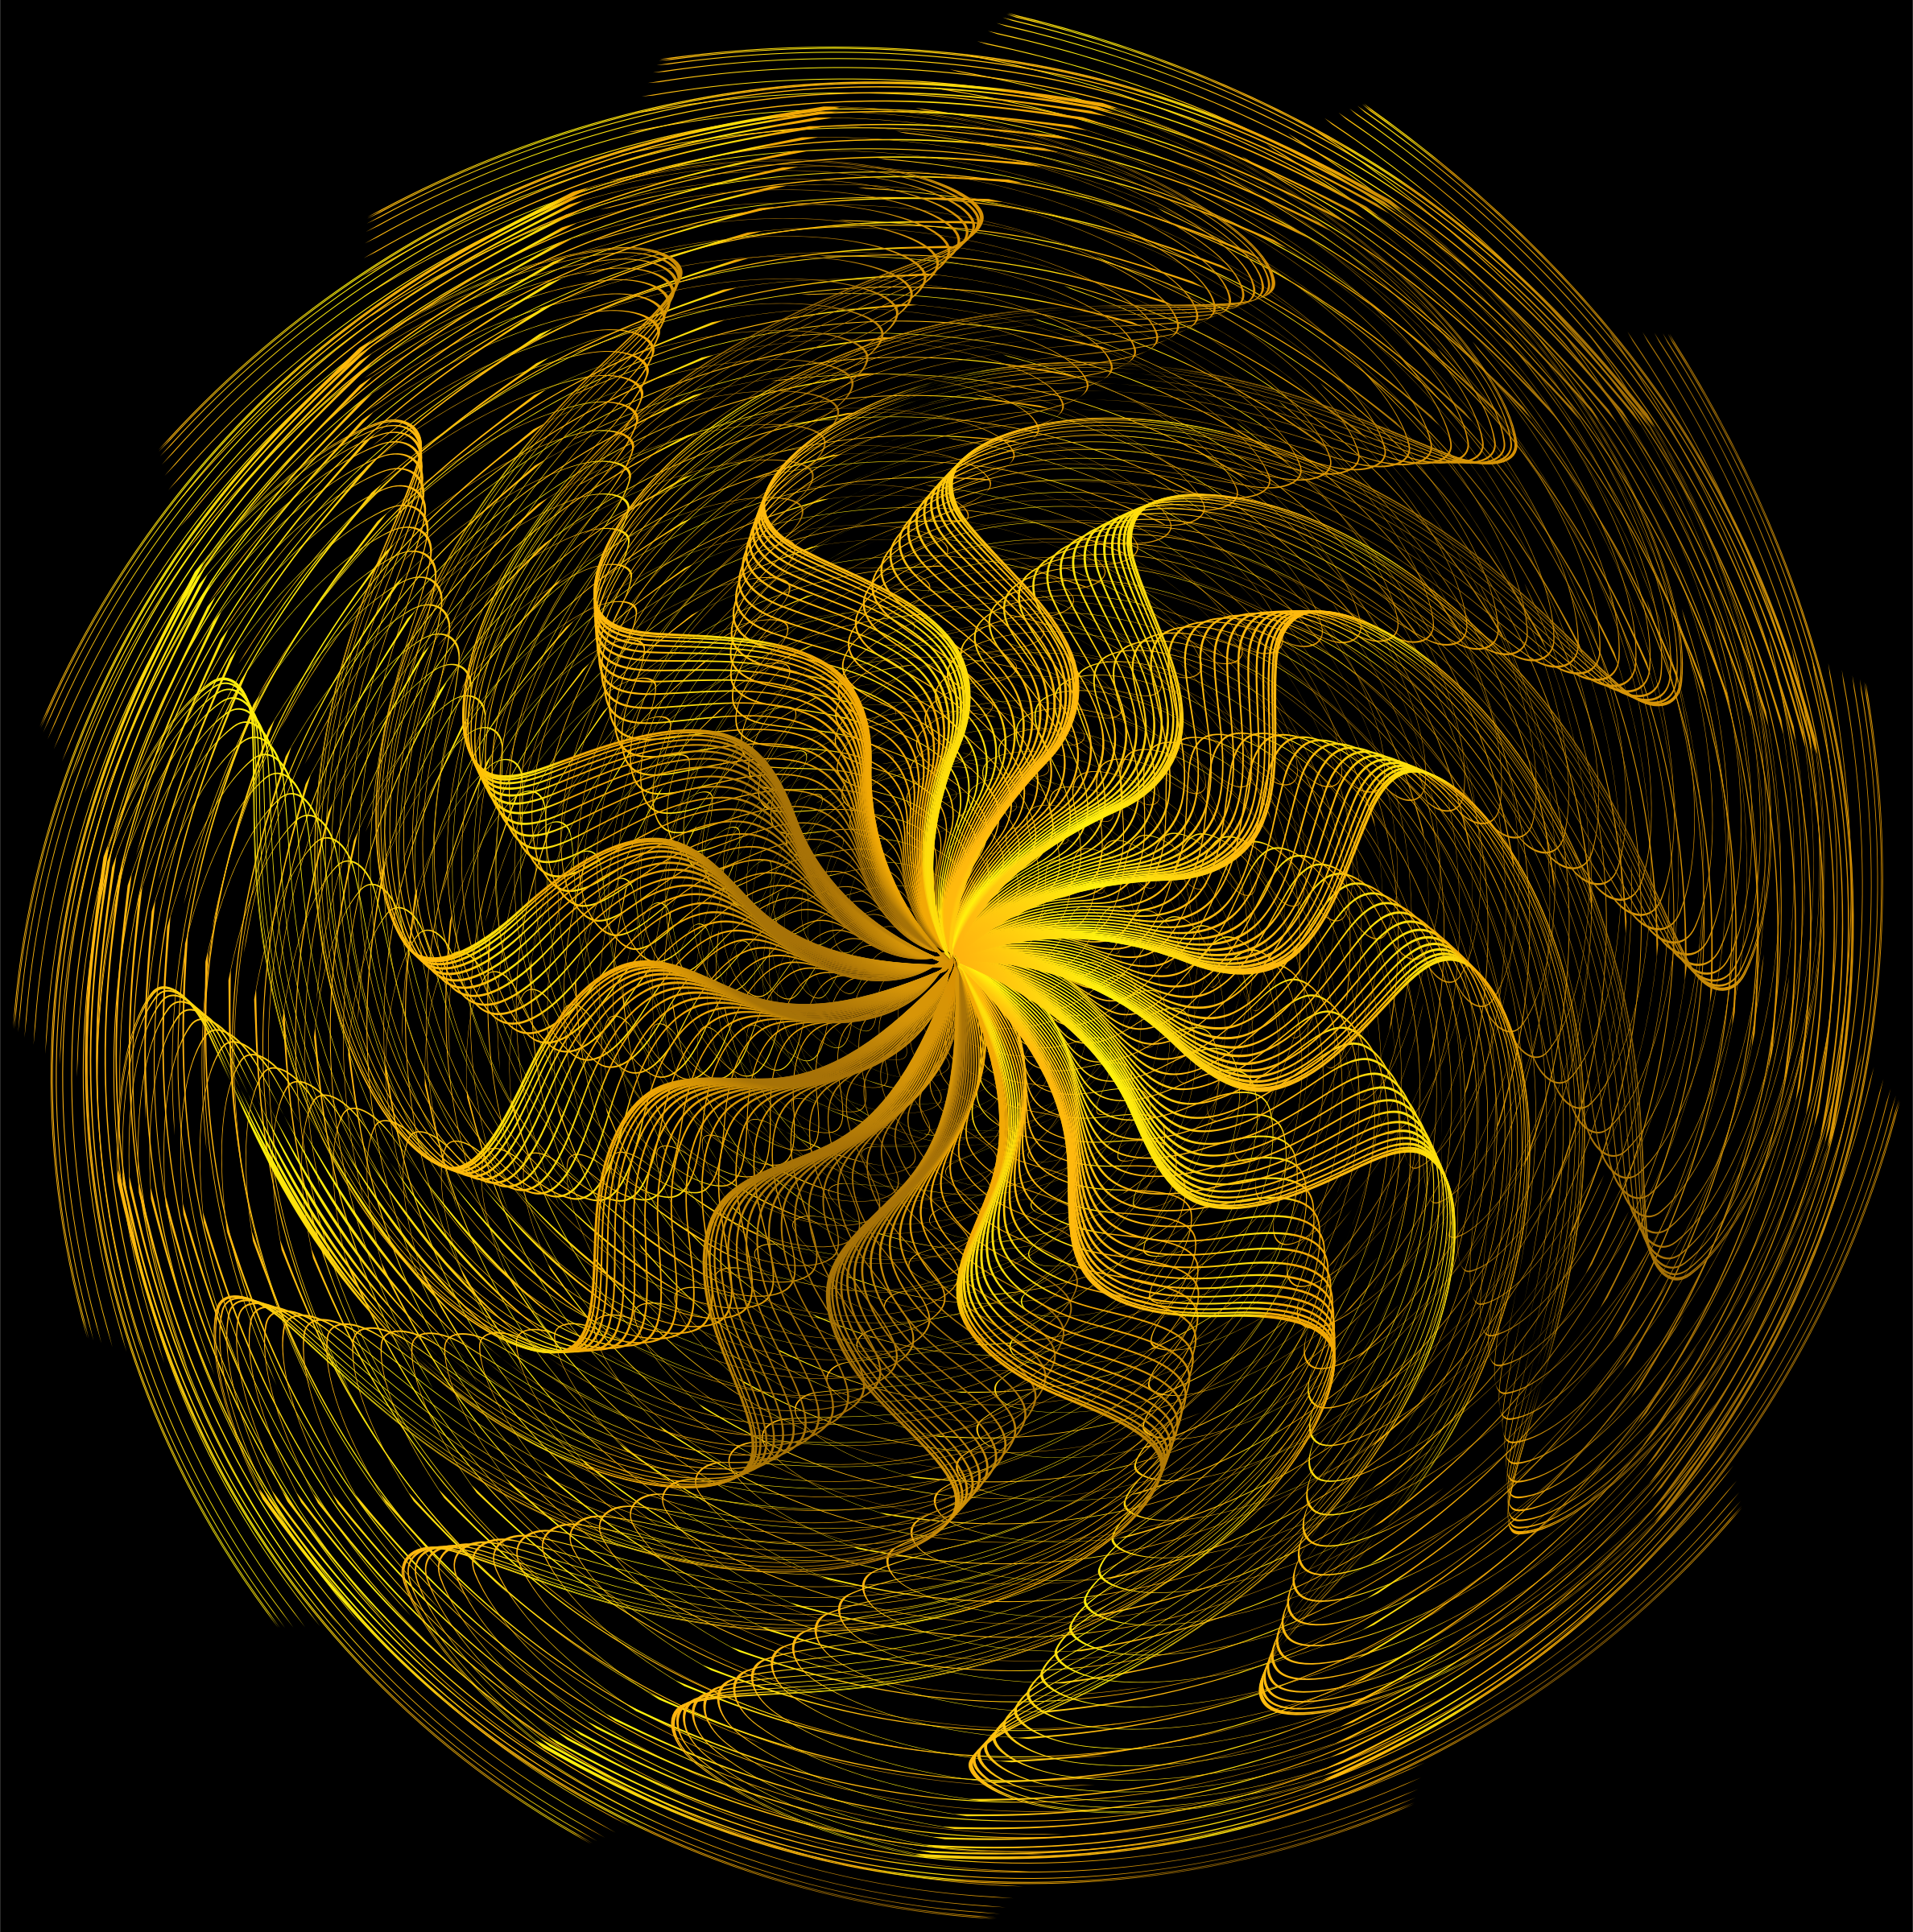 Colorful Wavy Vortex Line Art 4 by GDJ